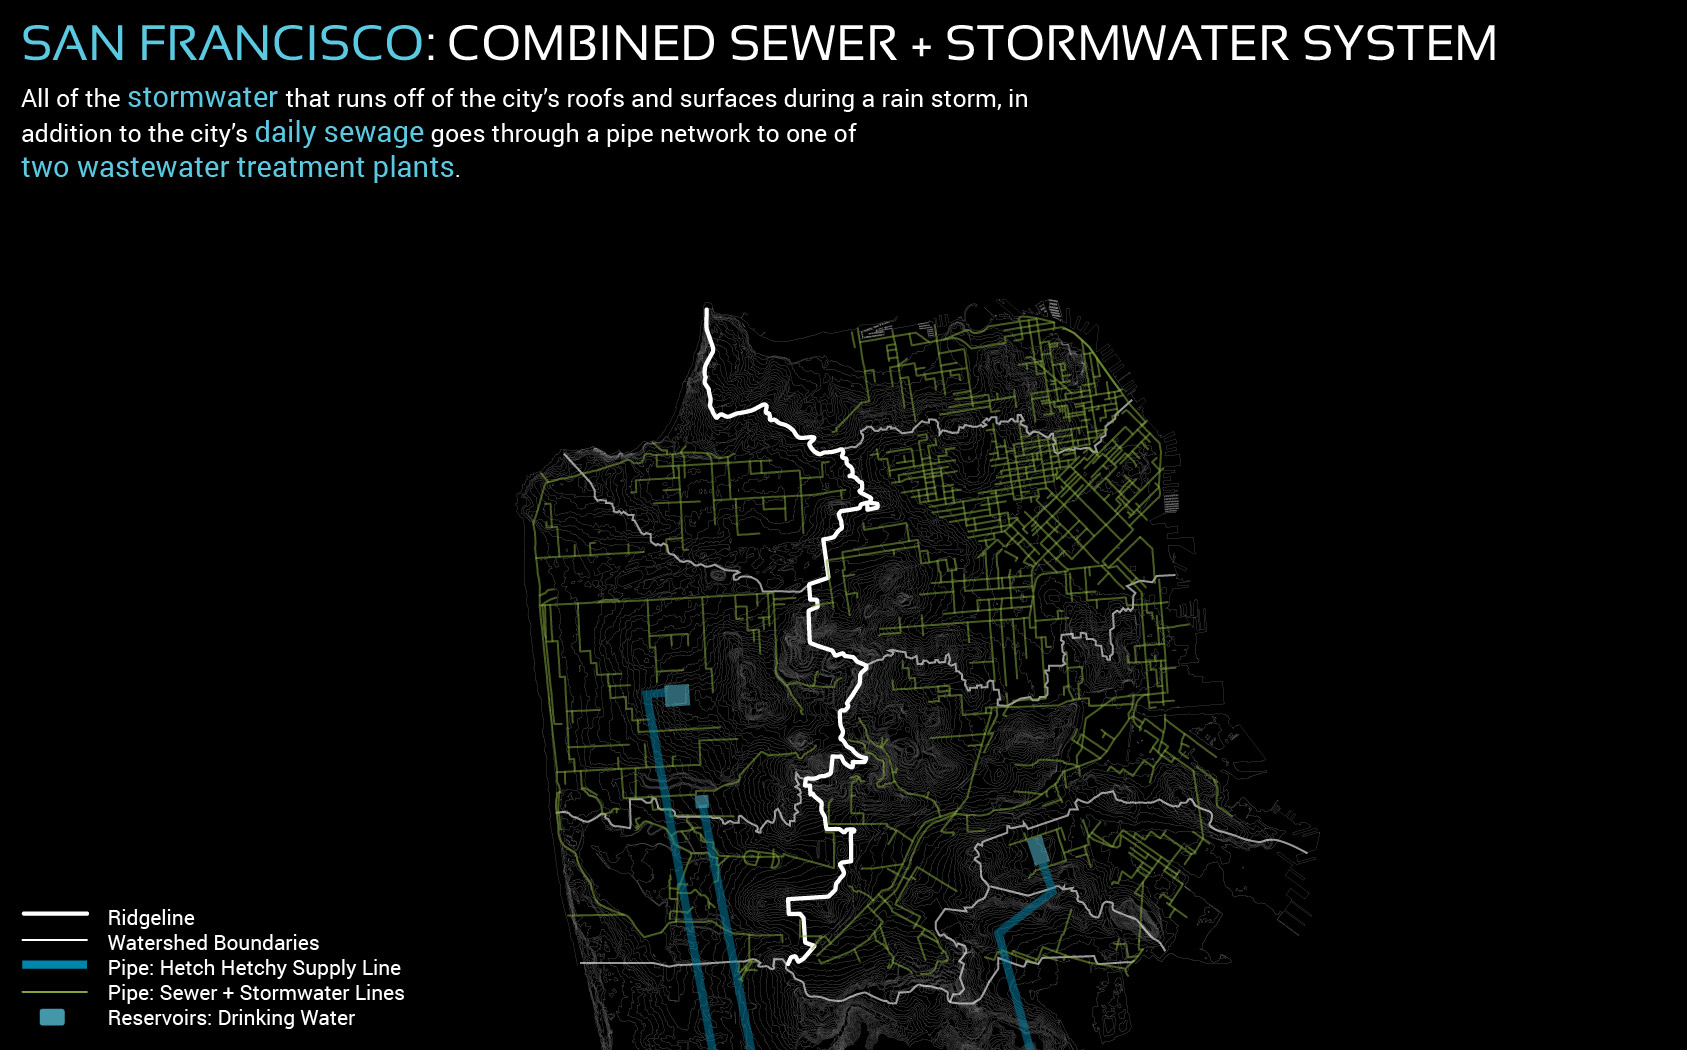 Figure 6. The city's combined stormwater and sewer system reveals patterns of the landscape, such as Golden Gate Park, and Twin Peaks